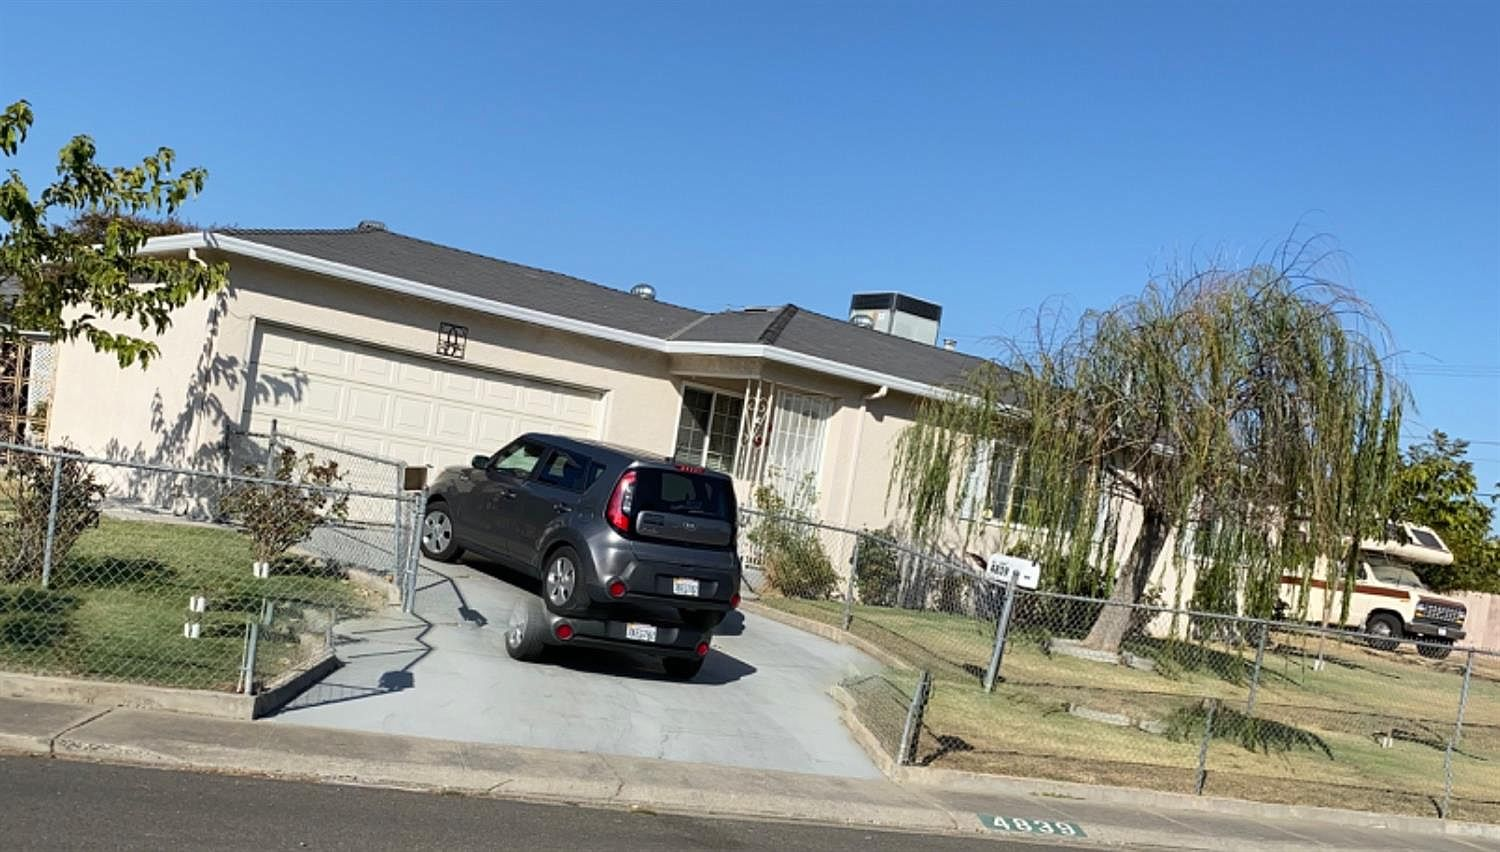 4839 Section Ave Stockton Ca 95215 Zillow